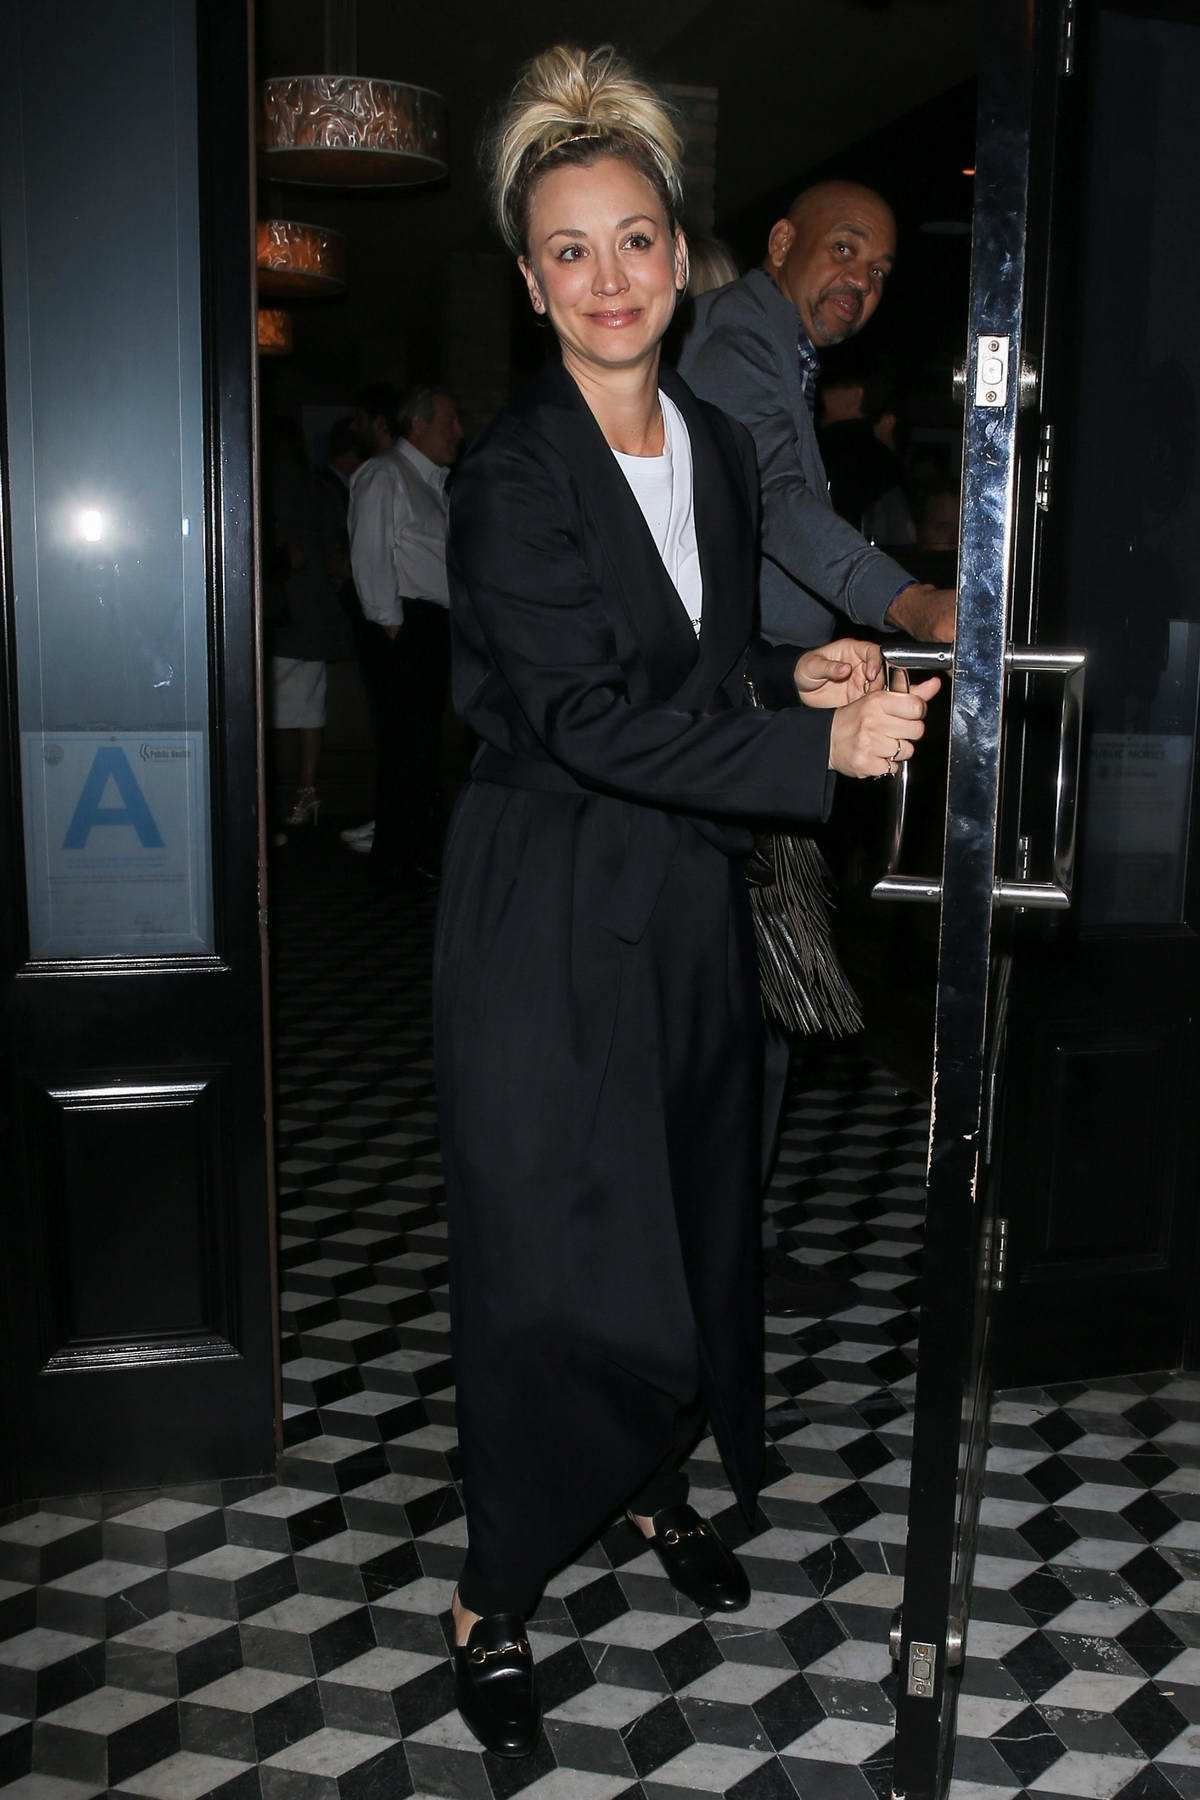 Kaley Cuoco bump into David Spade while leaving after dinner at Craig's in West Hollywood, Los Angeles